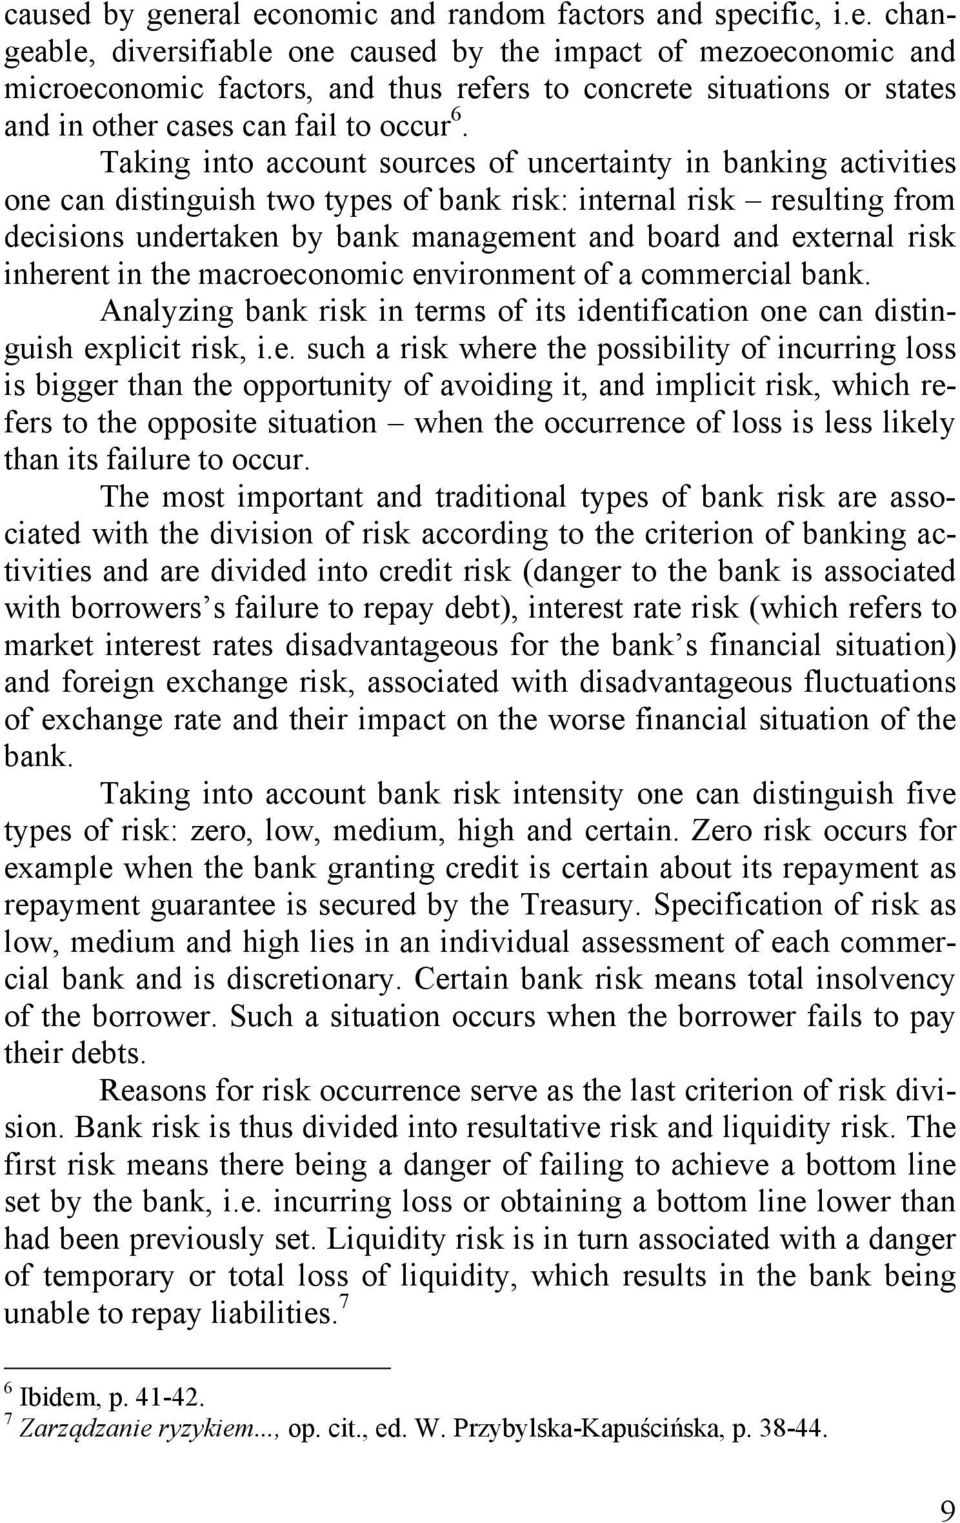 external risk inherent in the macroeconomic environment of a commercial bank. Analyzing bank risk in terms of its identification one can distinguish explicit risk, i.e. such a risk where the